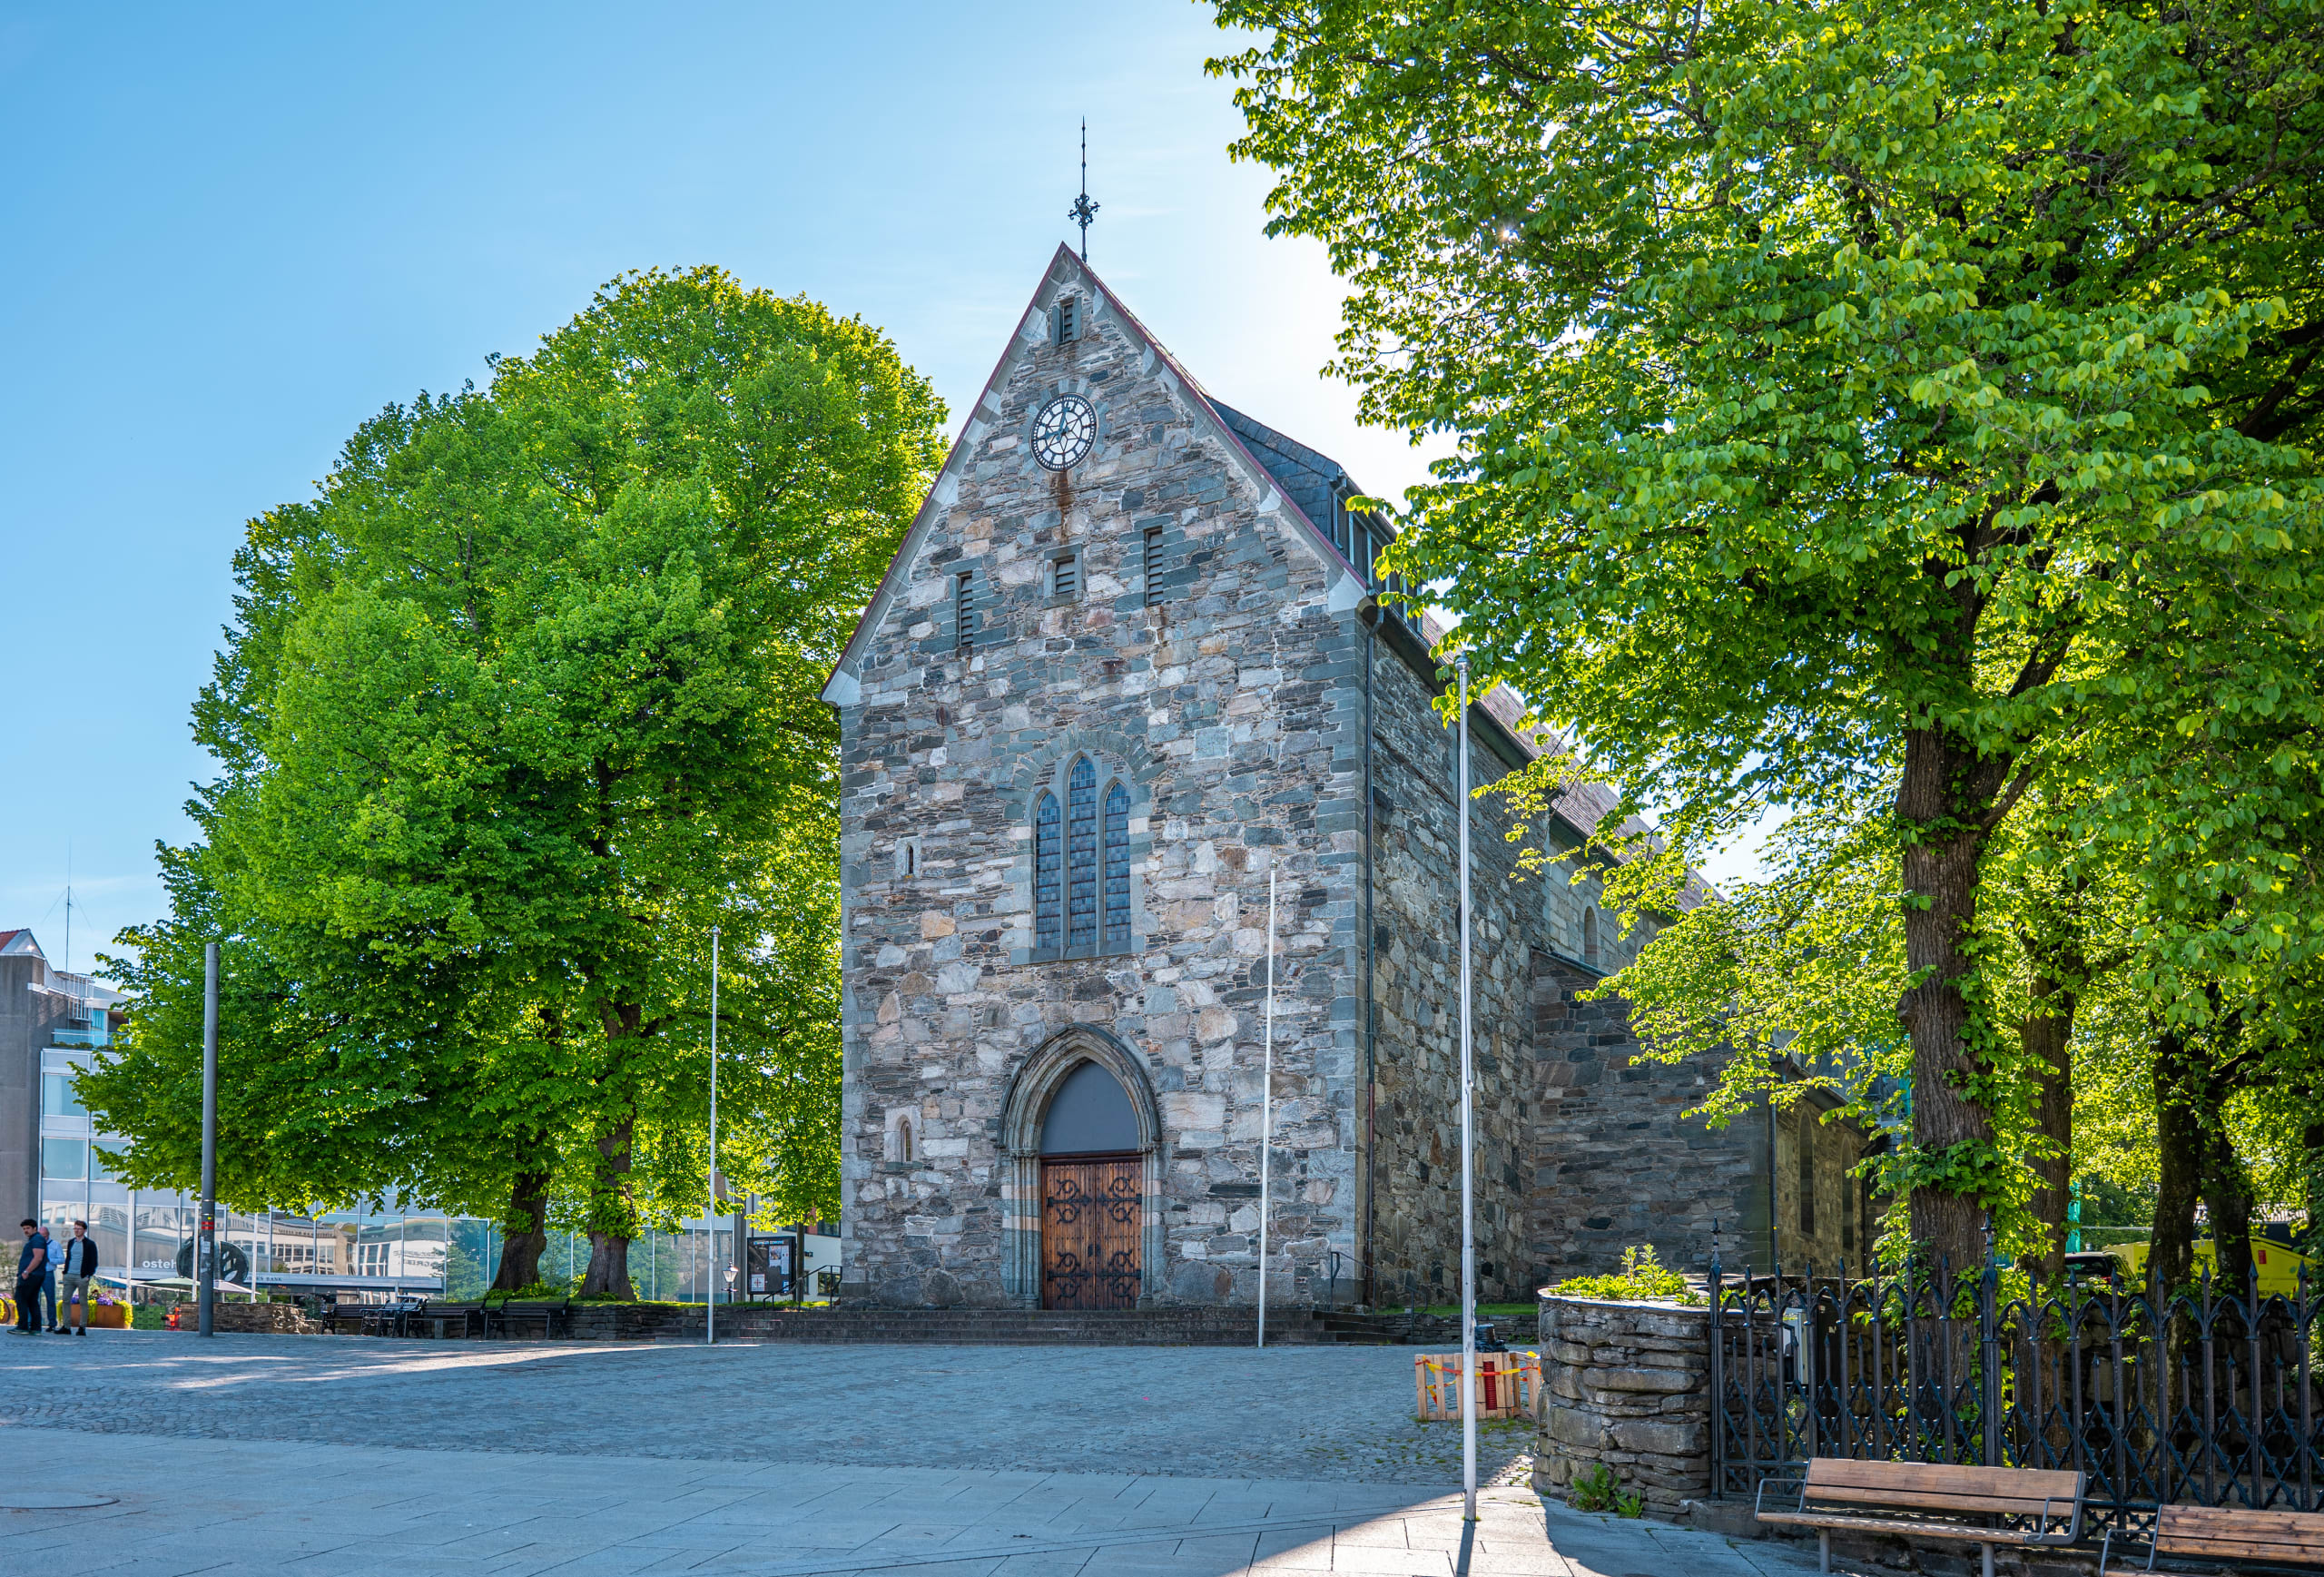 The cathedral of Stavanger in the heart of the city